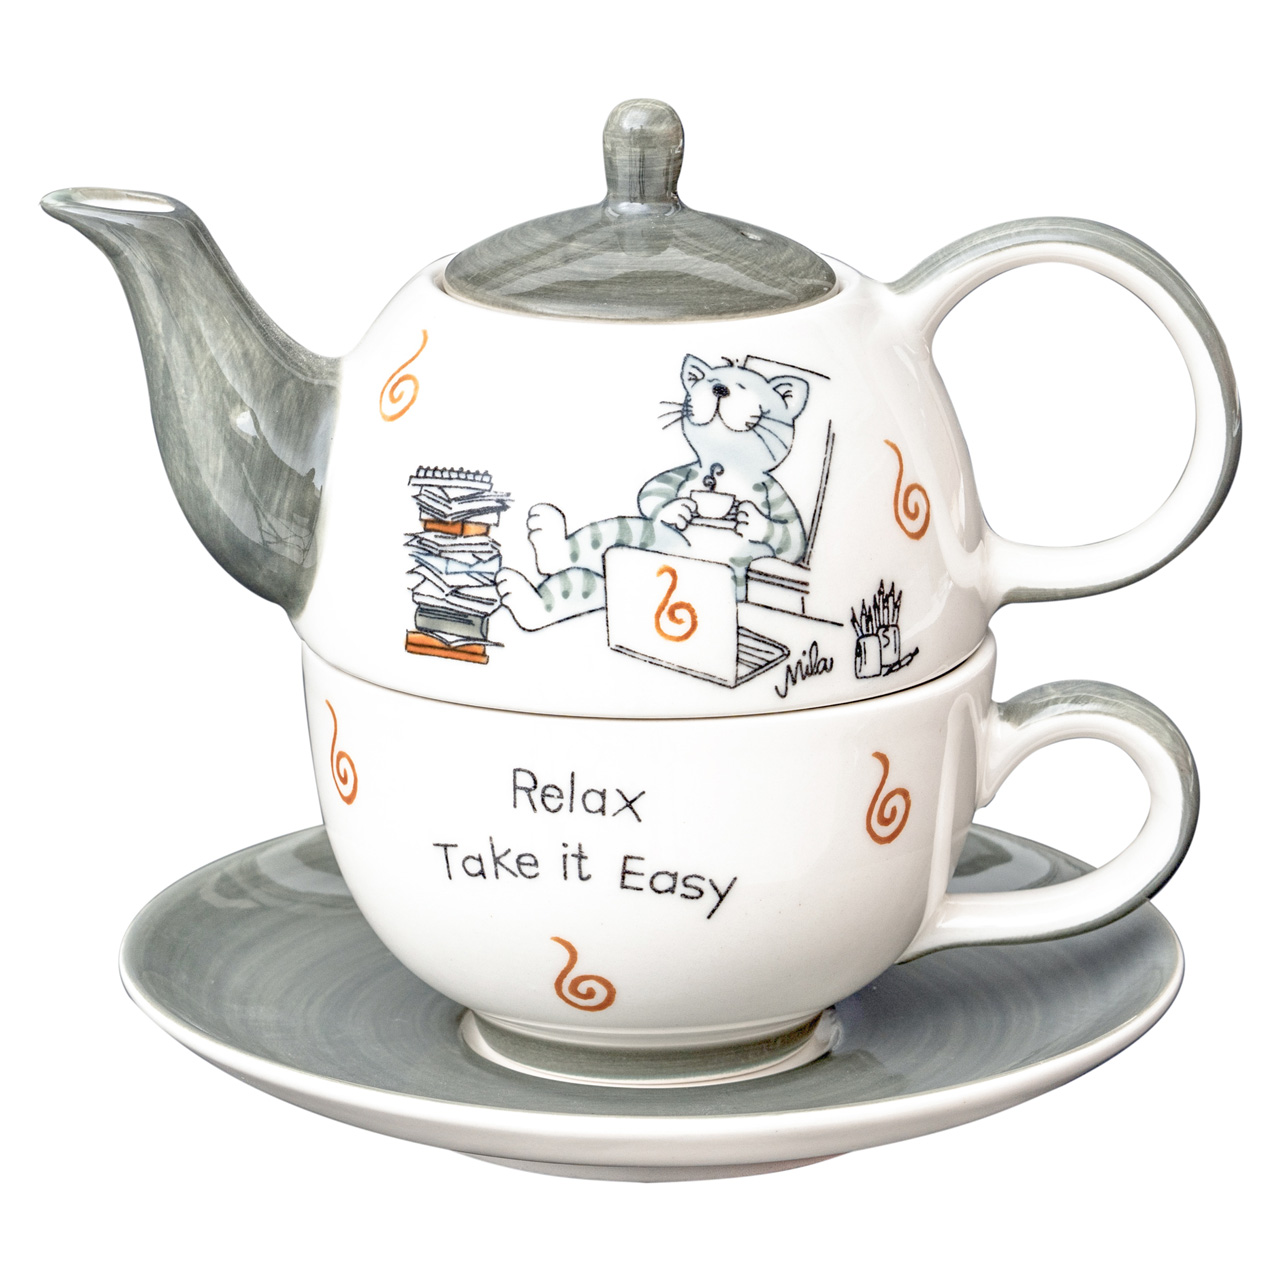 Tea for one - Oommh... relax - take it easy